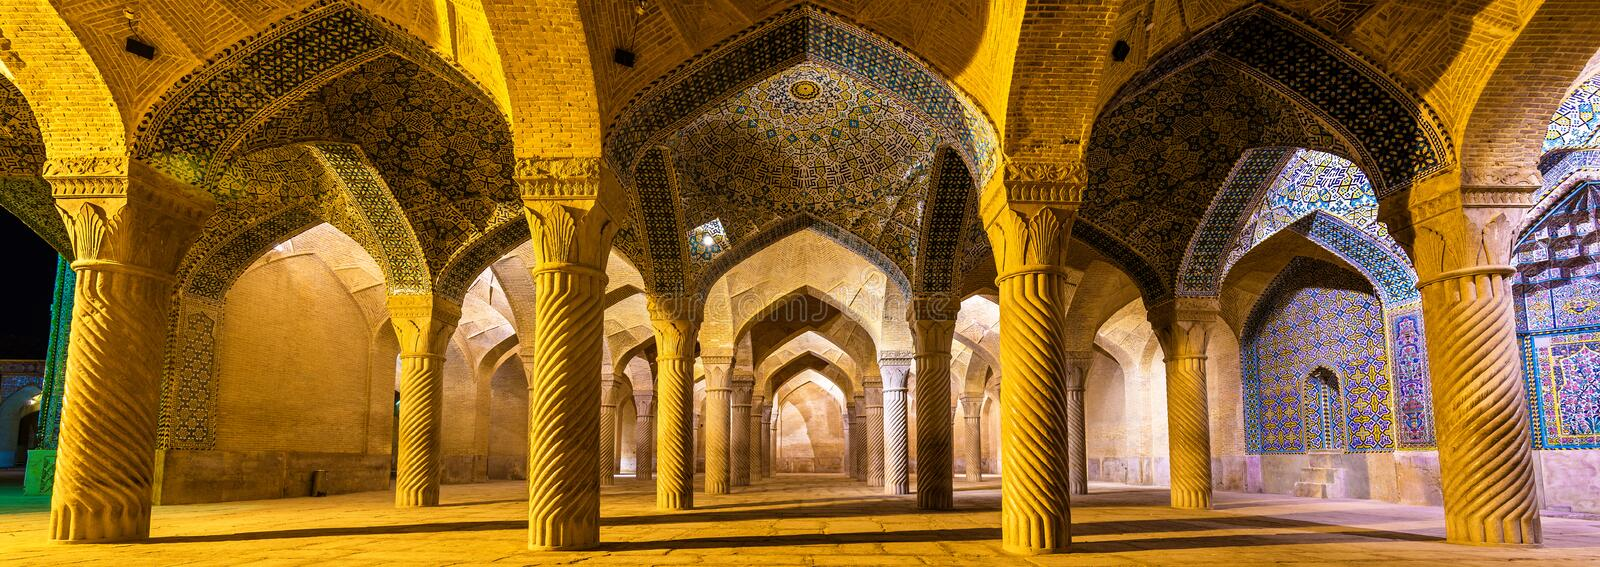 Interior of Vakil Mosque in Shiraz, Iran royalty free stock photo